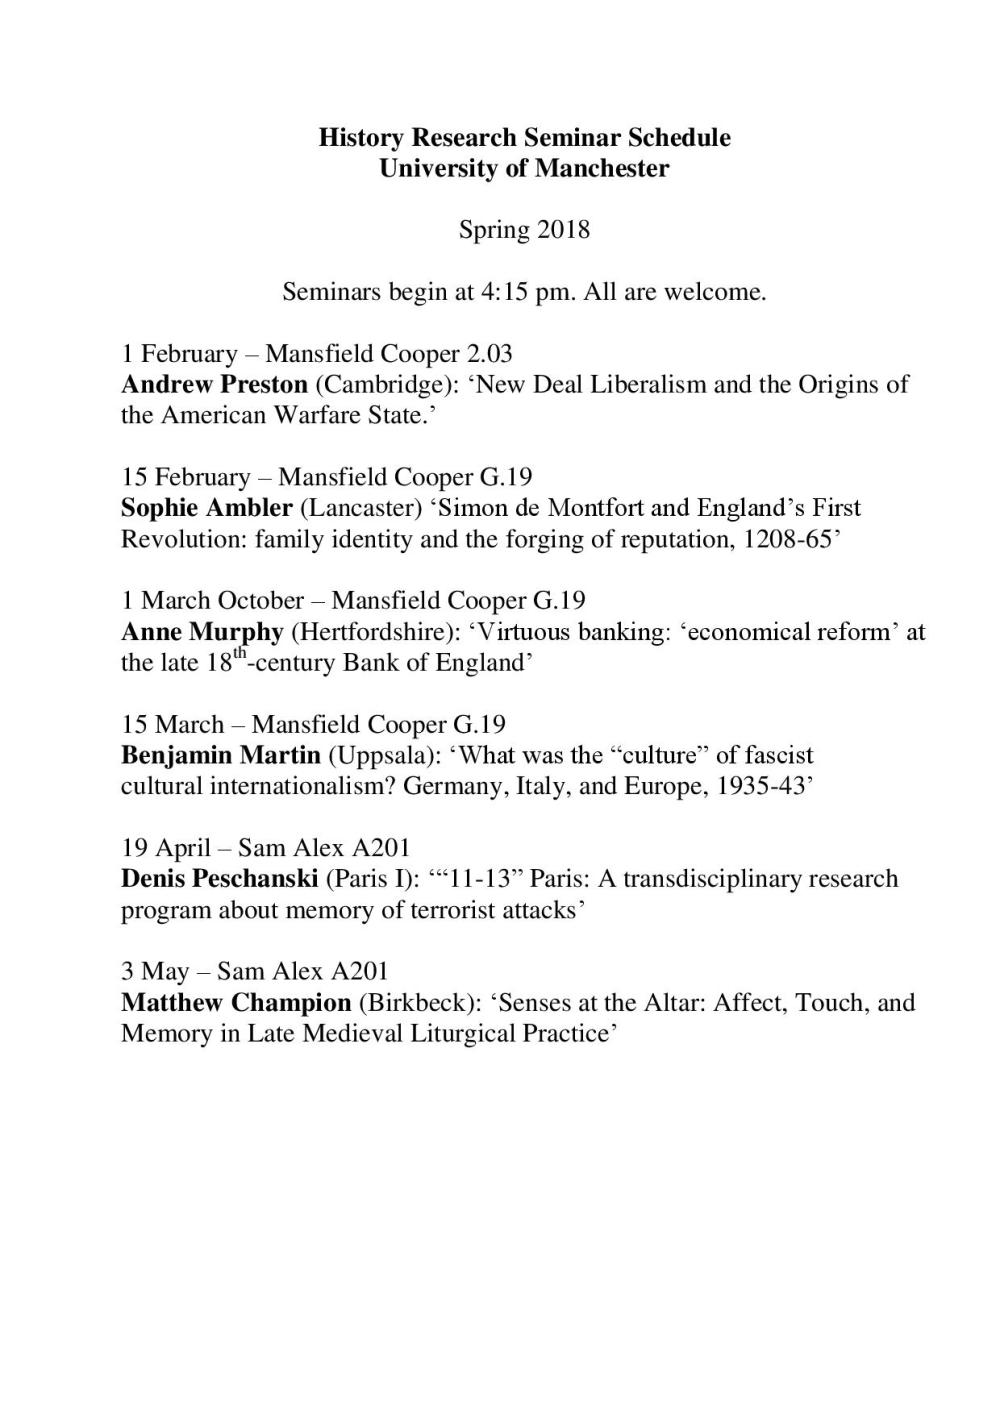 History Research Seminars Spring 2018-page-001